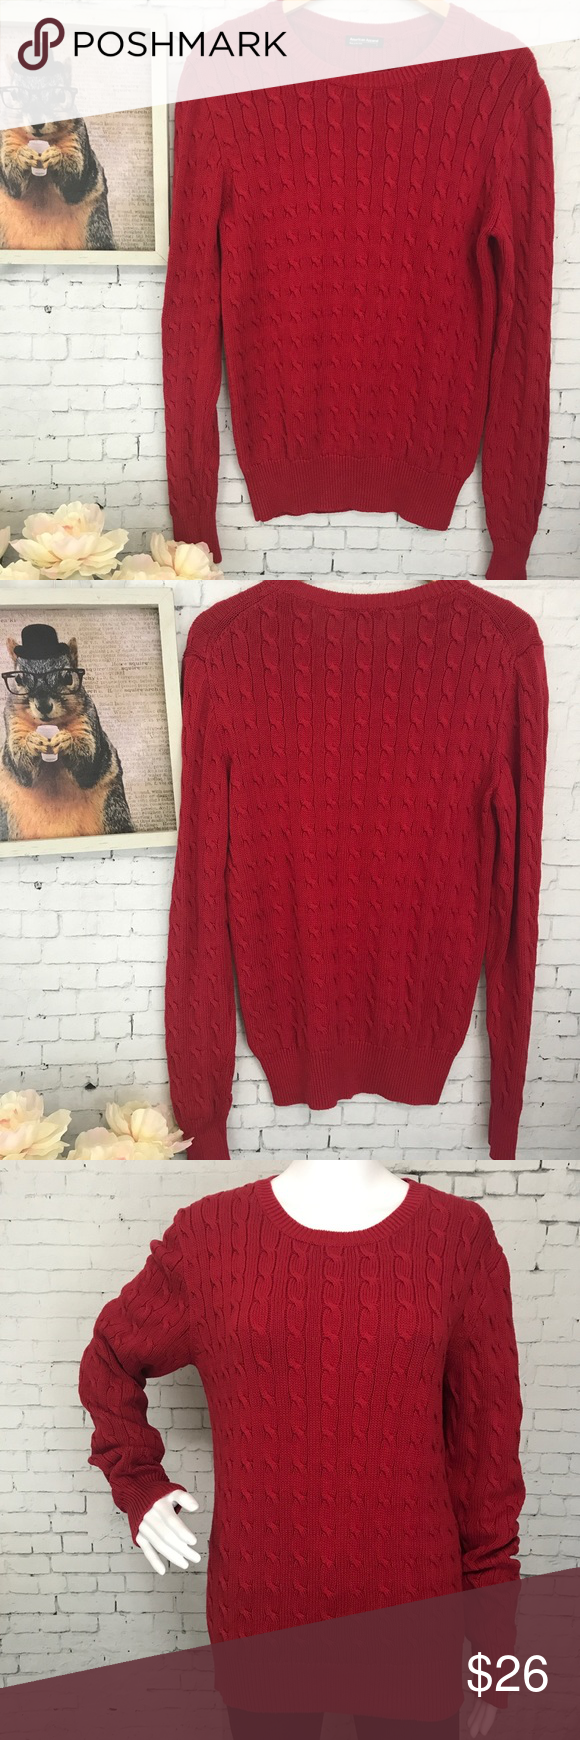 American Apparel Cotton Cable Knit Sweater Large | Cable knit ...